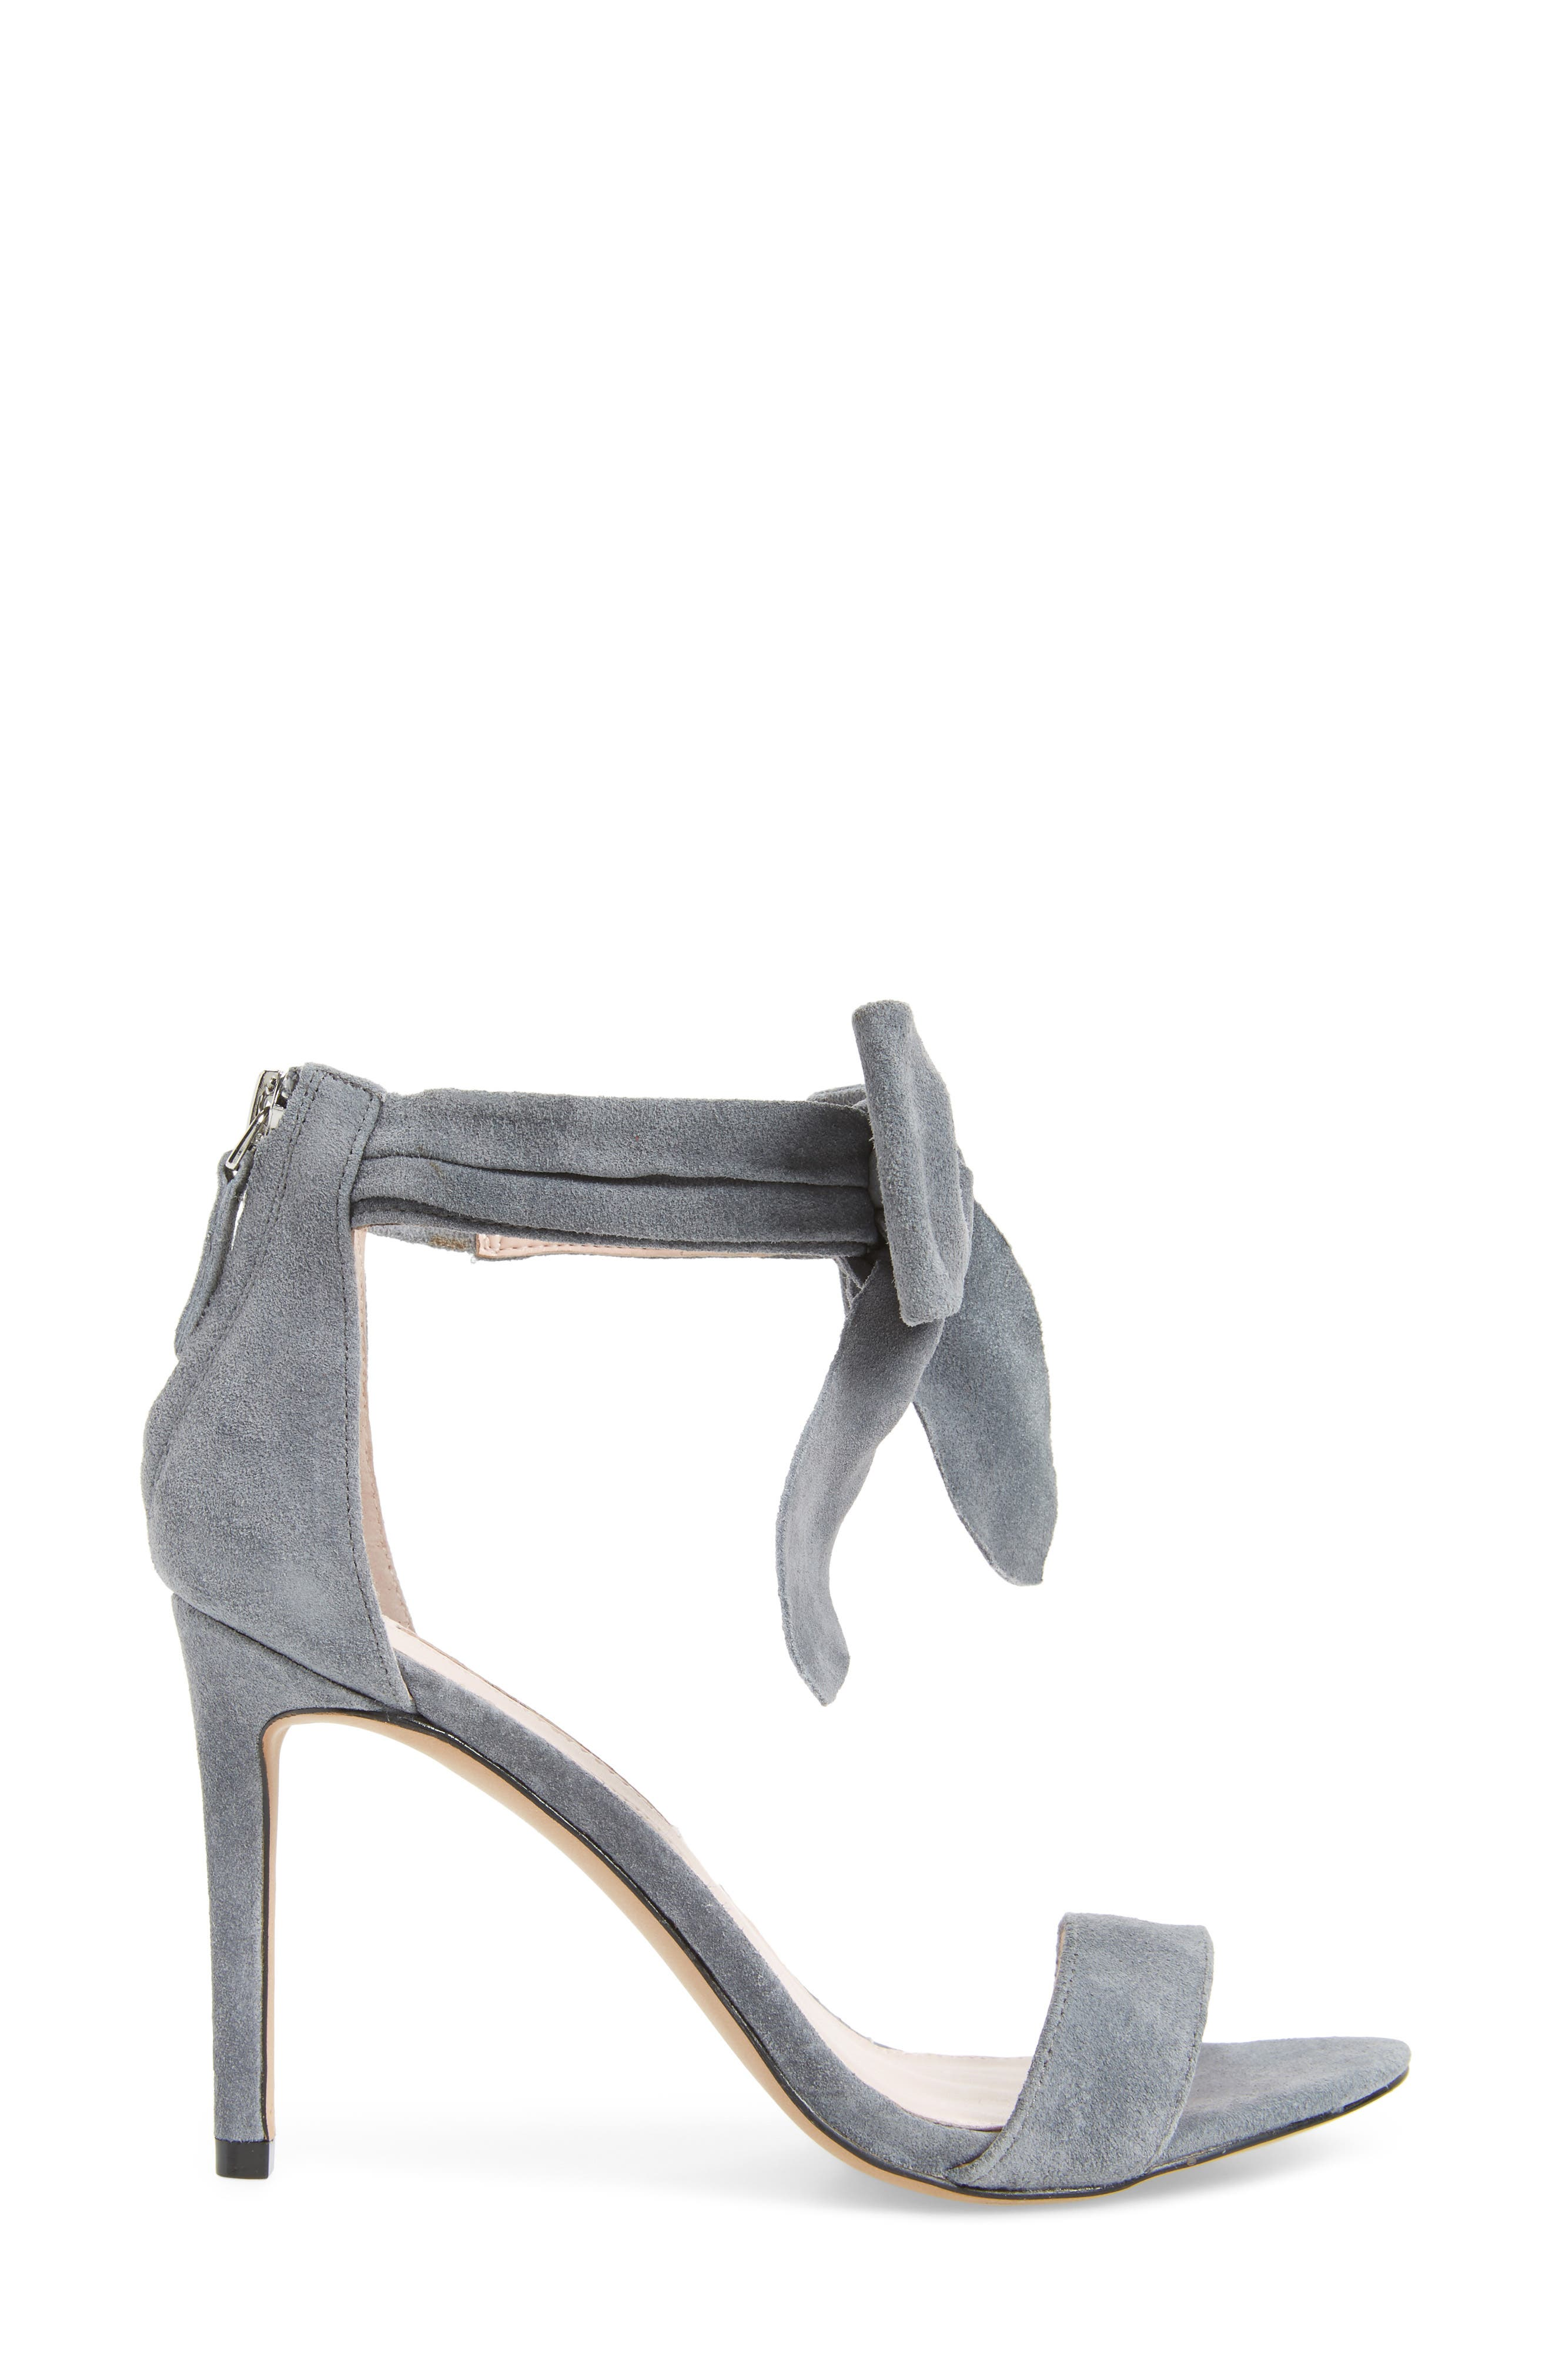 Jax Ankle Bow Pump,                             Alternate thumbnail 3, color,                             Grey Suede